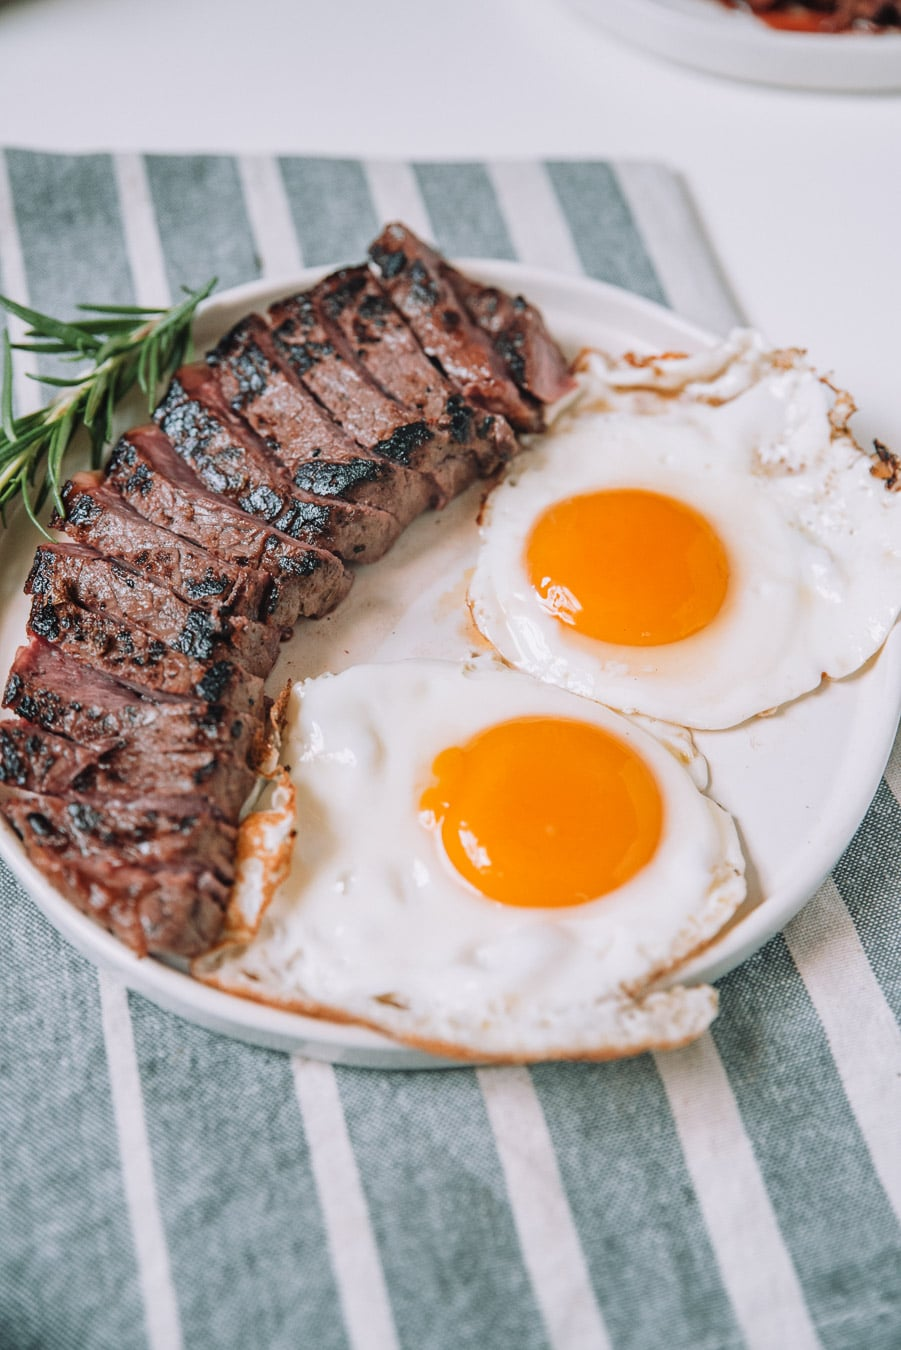 Rosemary Balsamic steak and Eggs on a white plate.